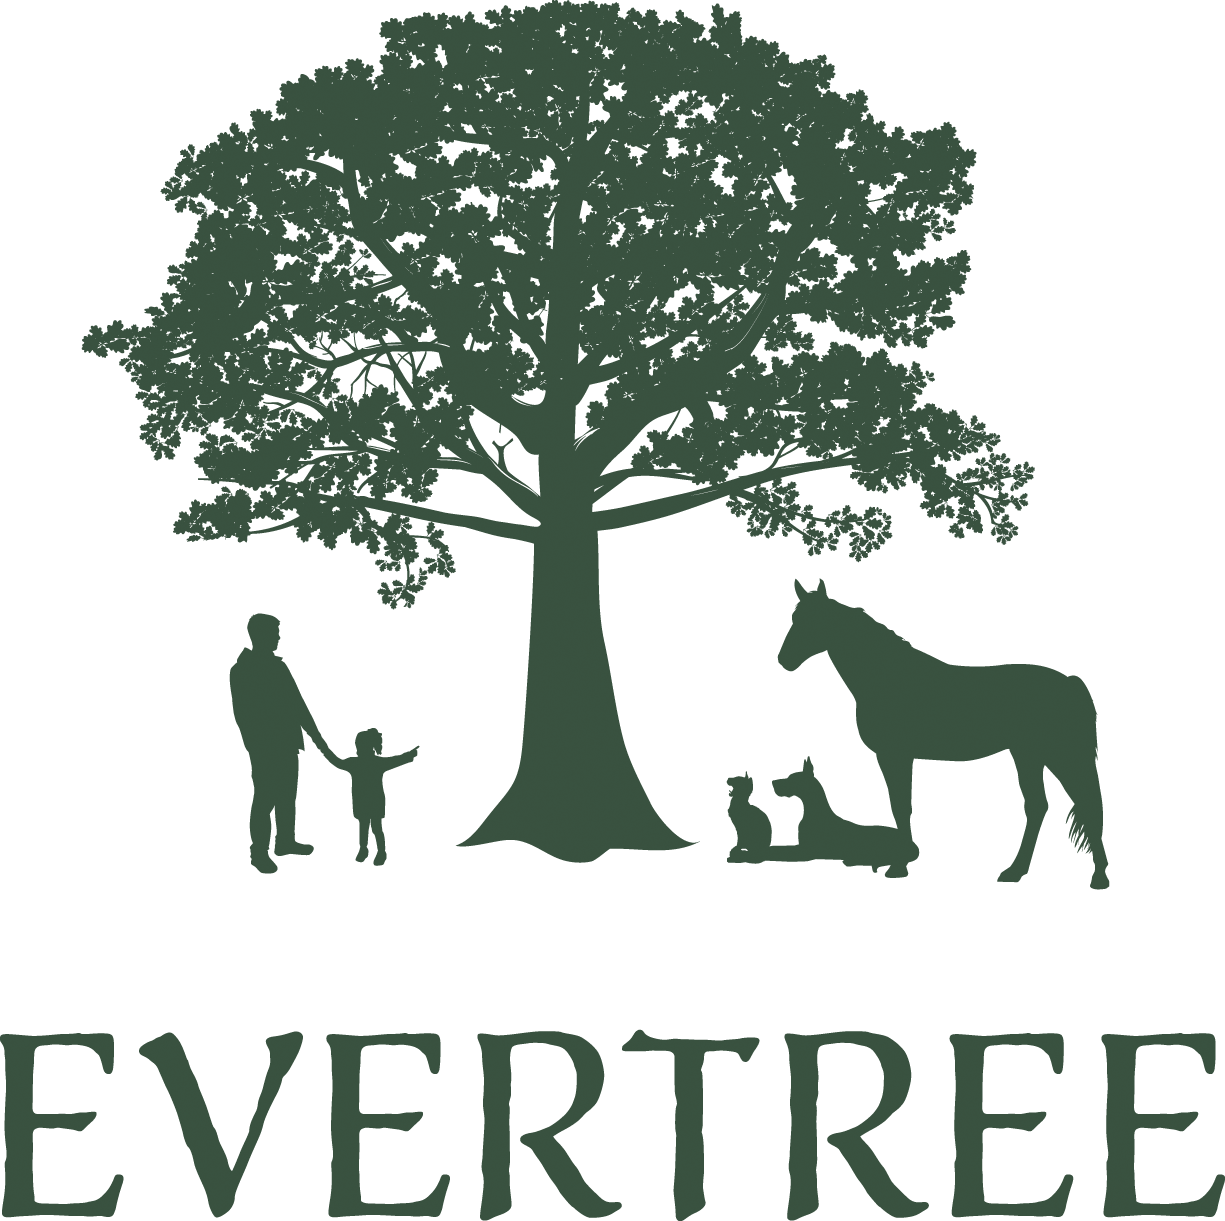 Evertree